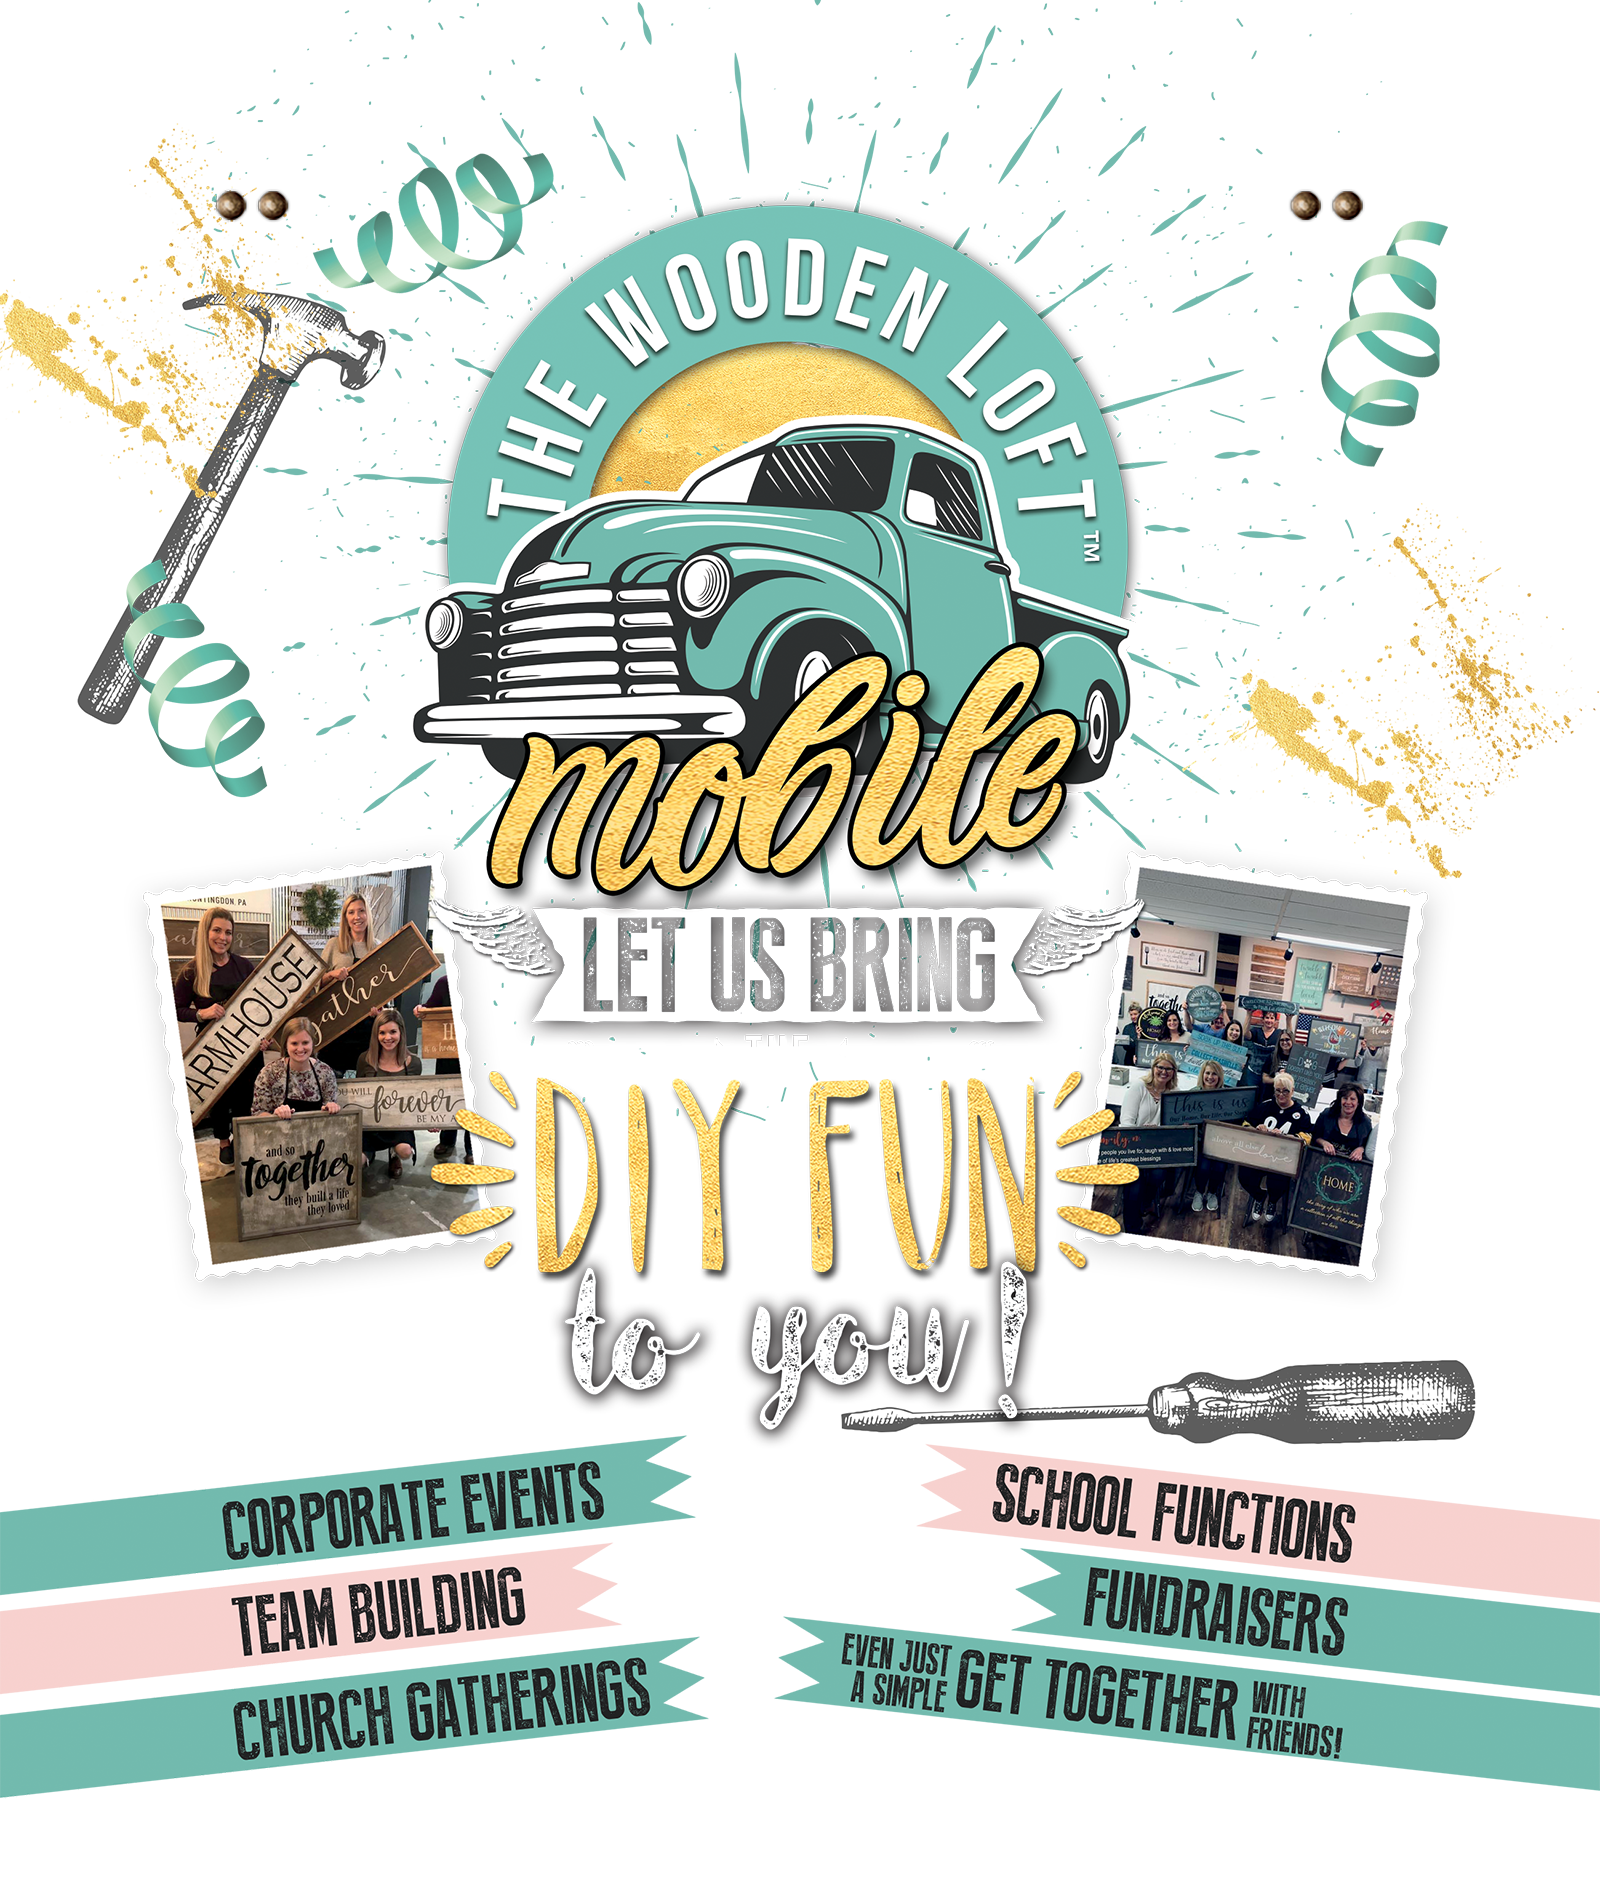 Mobile Workshops